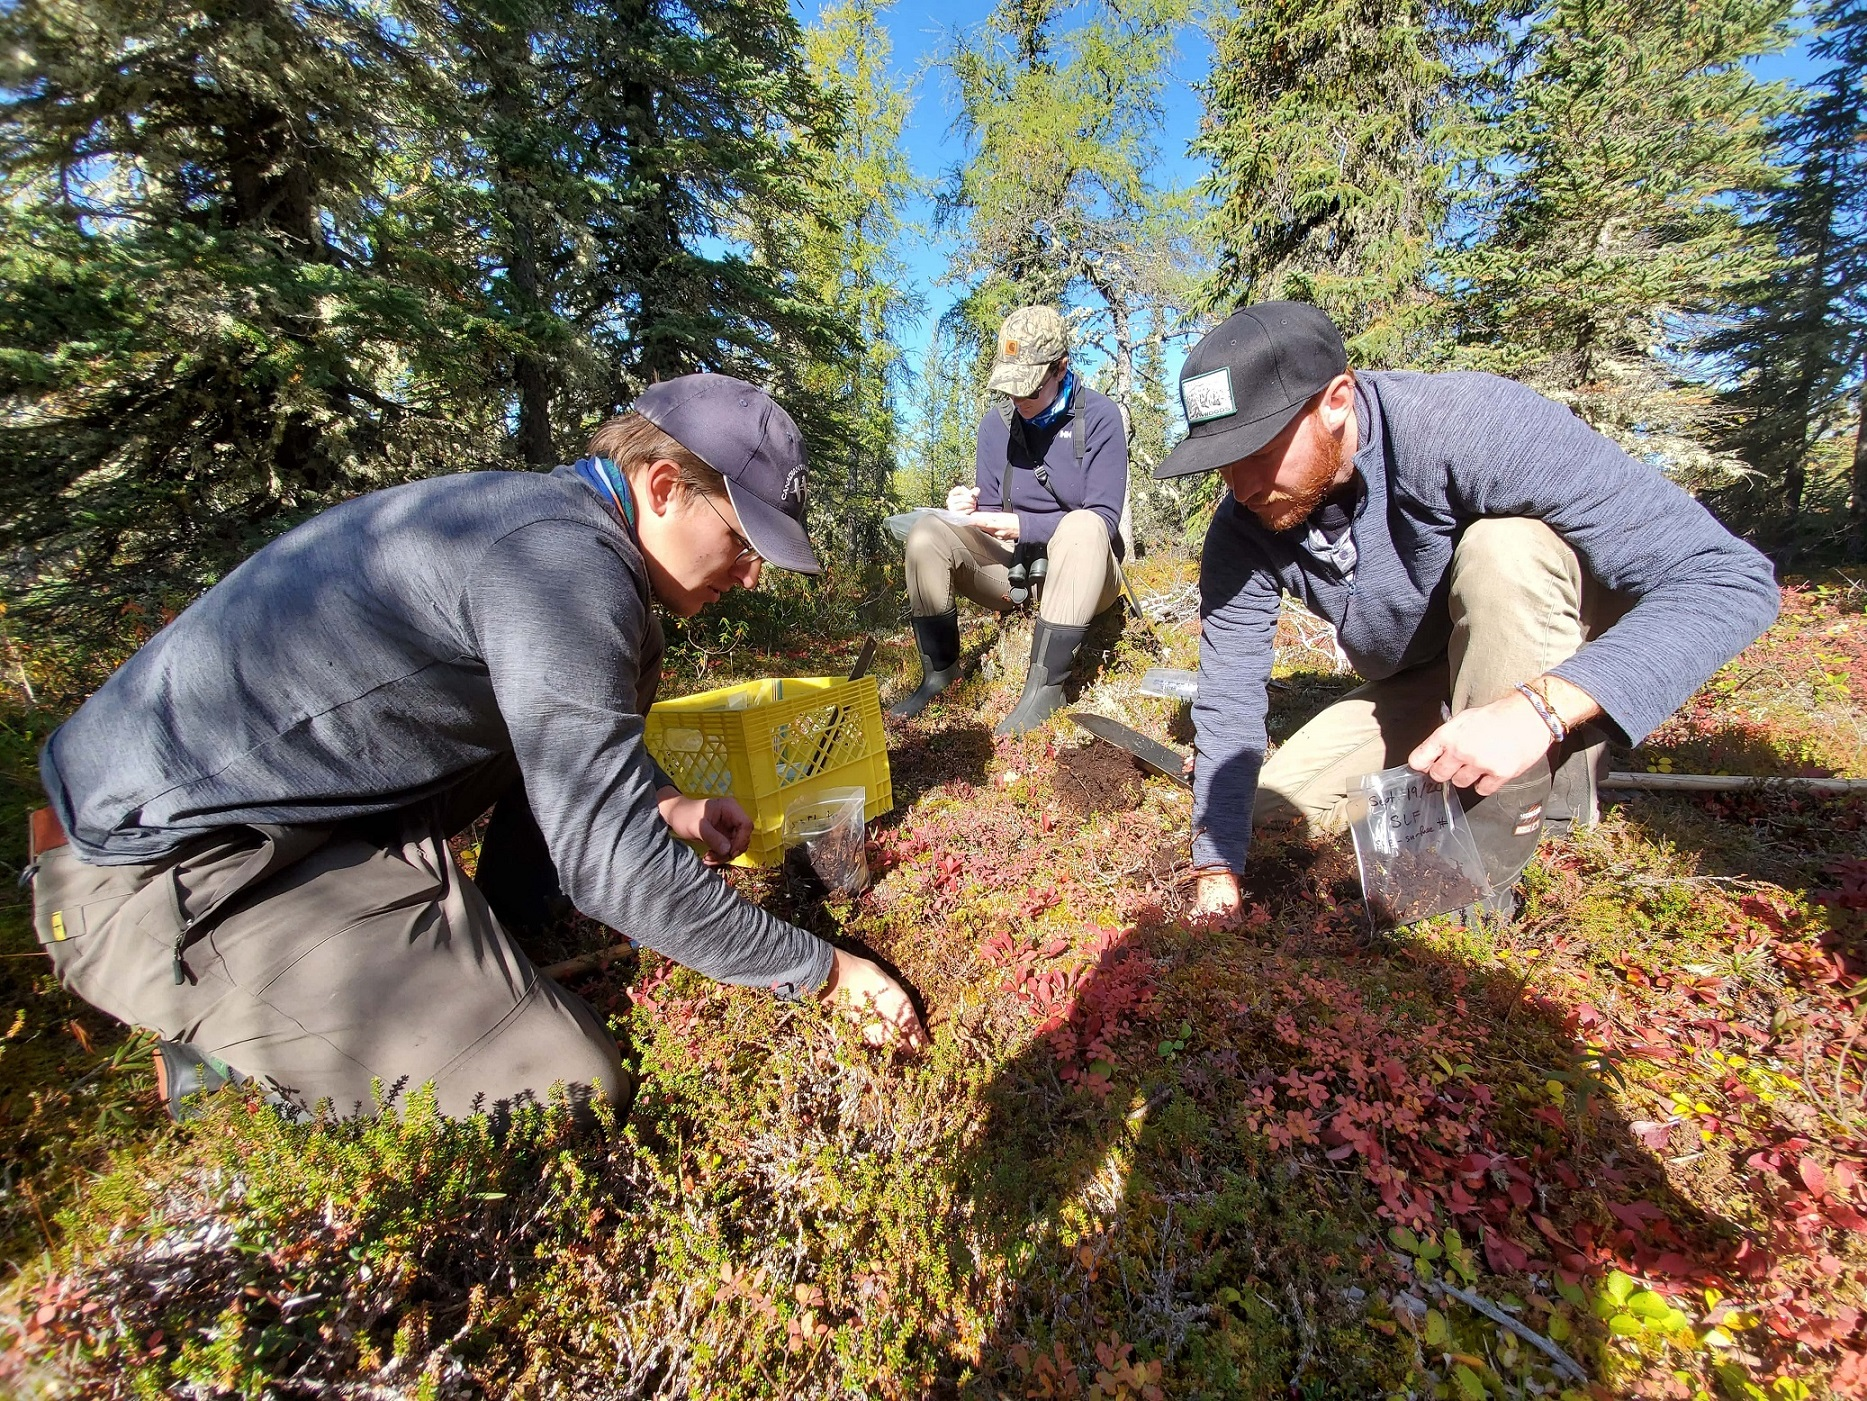 Collecting soil samples in the boreal forest.